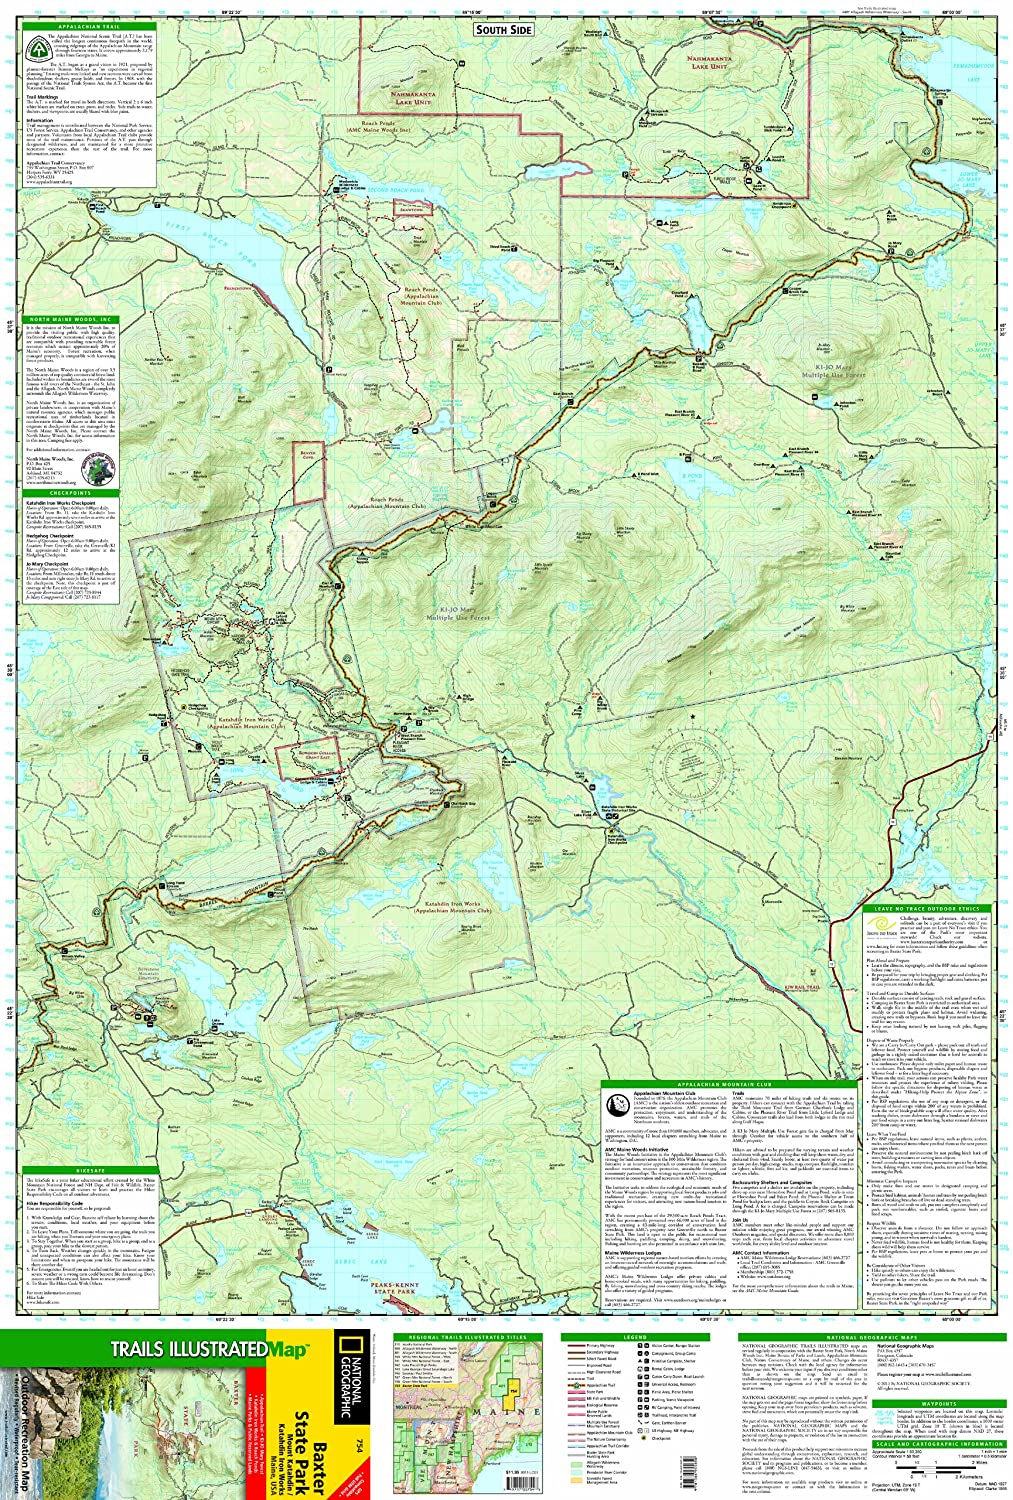 Baxter State Park/mount Katahdin: Trails Illustrated Other ... on lake george map, charleston map, baxter mn street map, floral park queens map, monhegan island map, mount katahdin map, androscoggin river map, kiwanis park map, patapsco hilton area map, baxter st park map, united states map, martha's vineyard map,